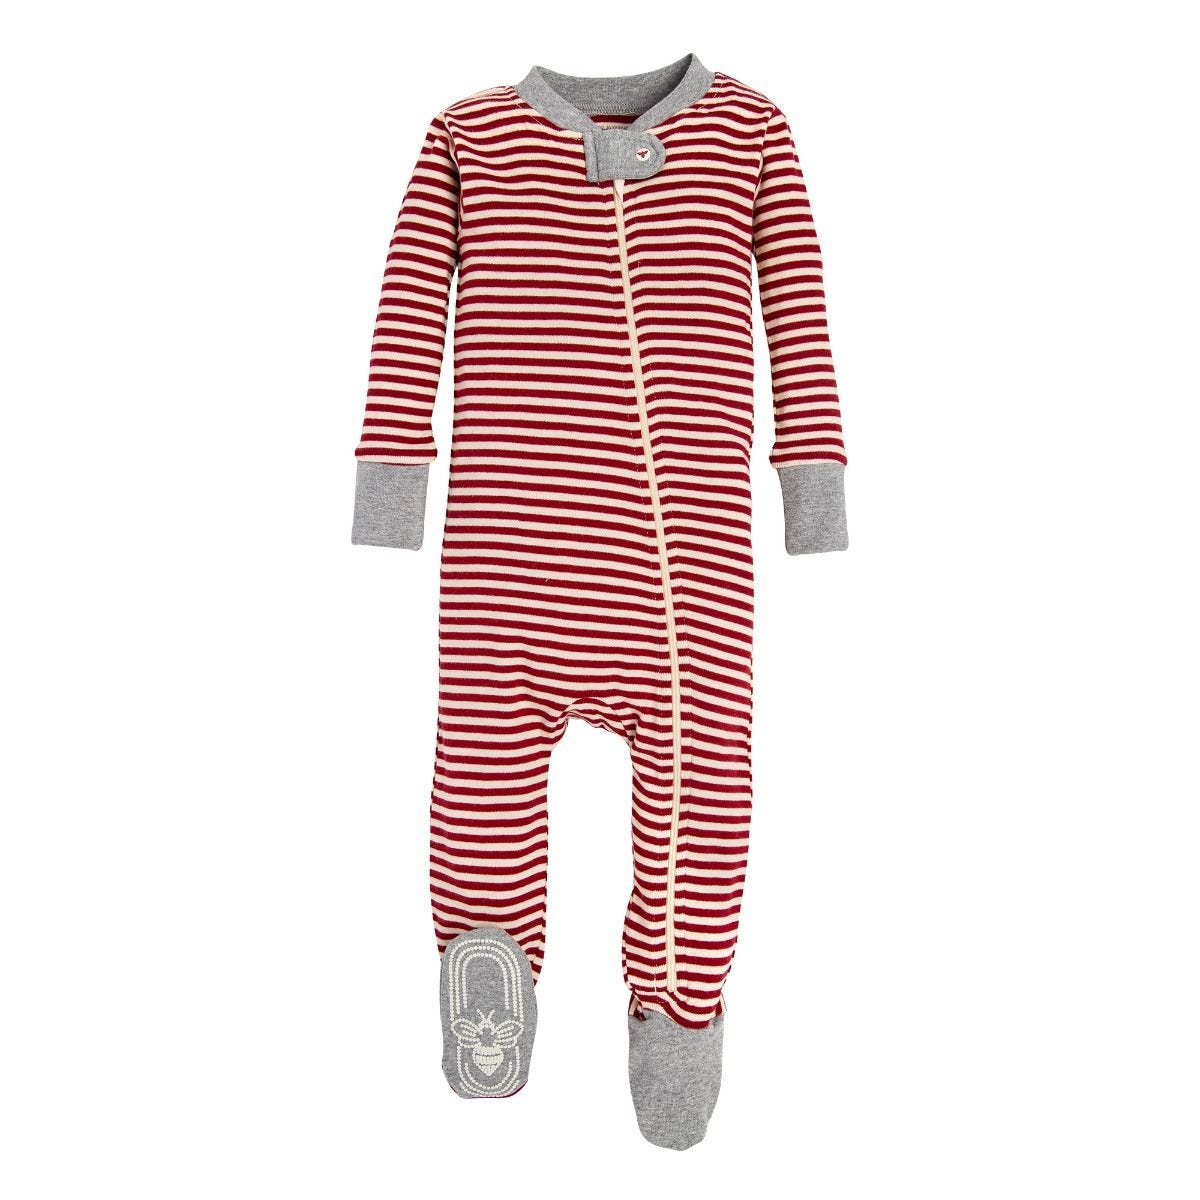 8e26e5a643 Candy Cane Stripe Organic Baby Holiday Matching Zip Up Footed ...